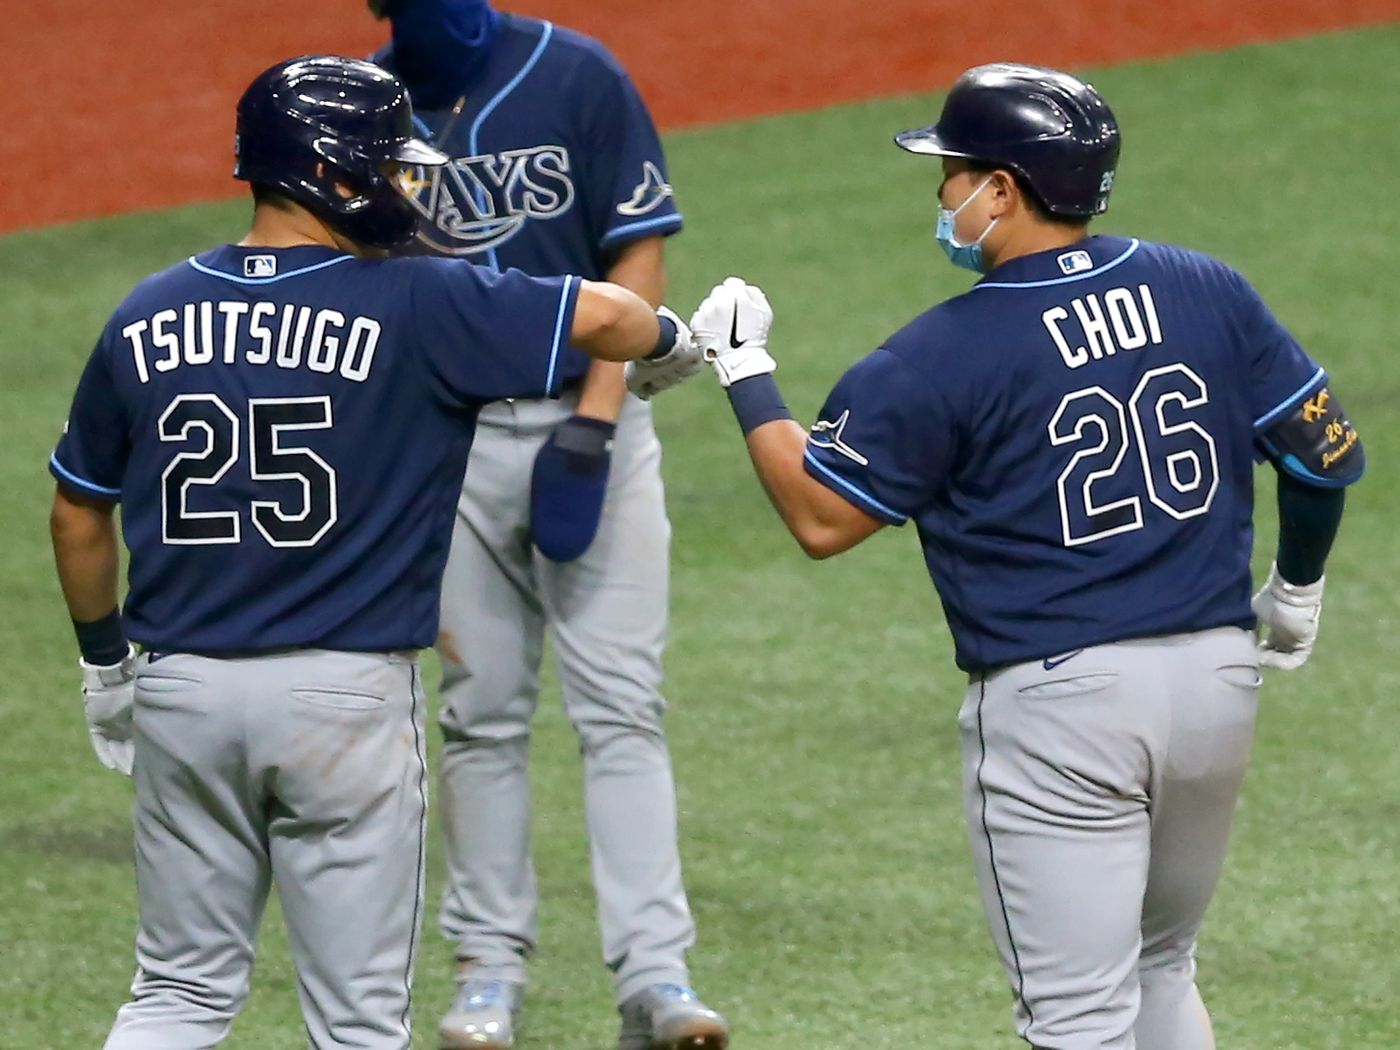 Opening Weekend Viewing Guide For Rays Fans Draysbay